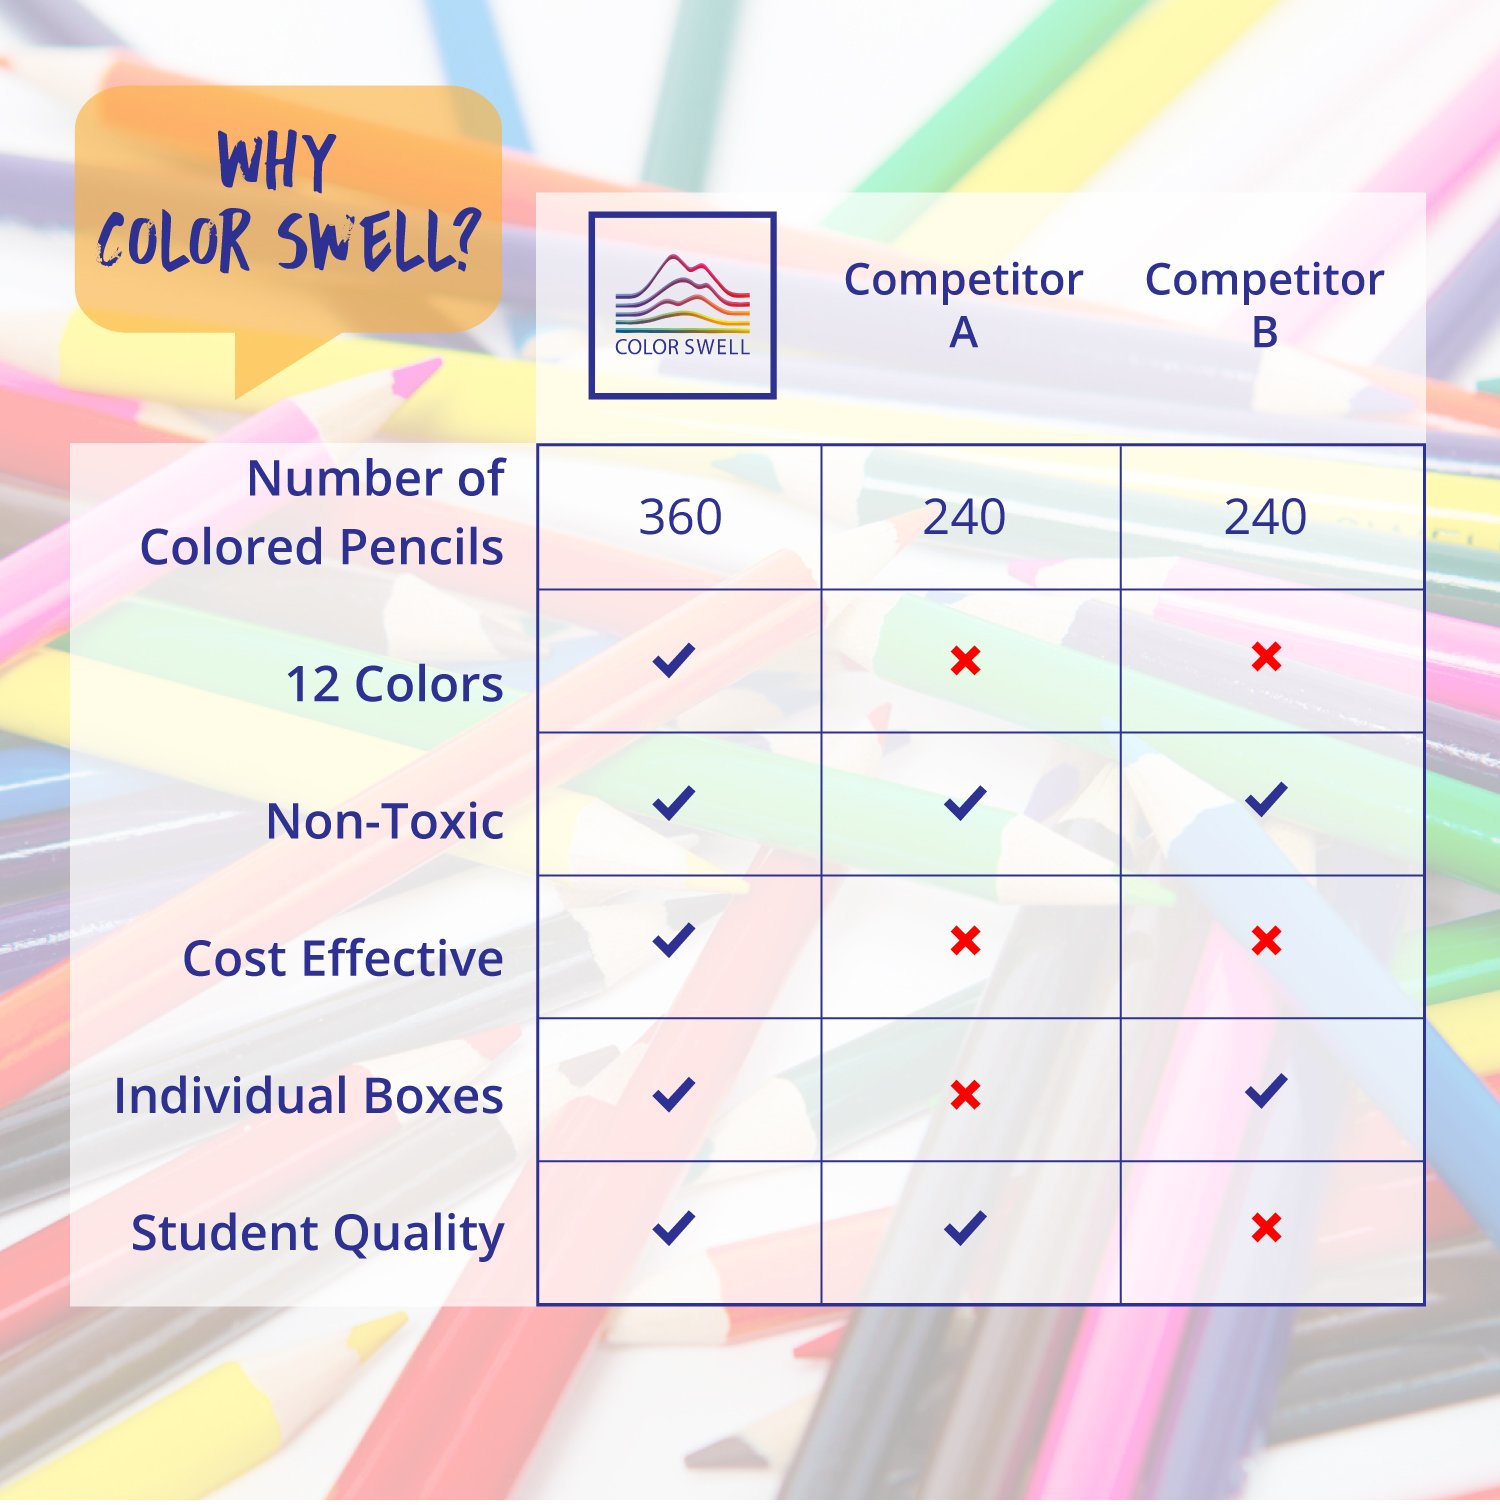 Color Swell Colored Pencils Bulk Pack 30 Sets 12 Count Assorted Vibrant Colors 360 Total Perfect for Kids, Teachers and Classrooms by Color Swell (Image #7)